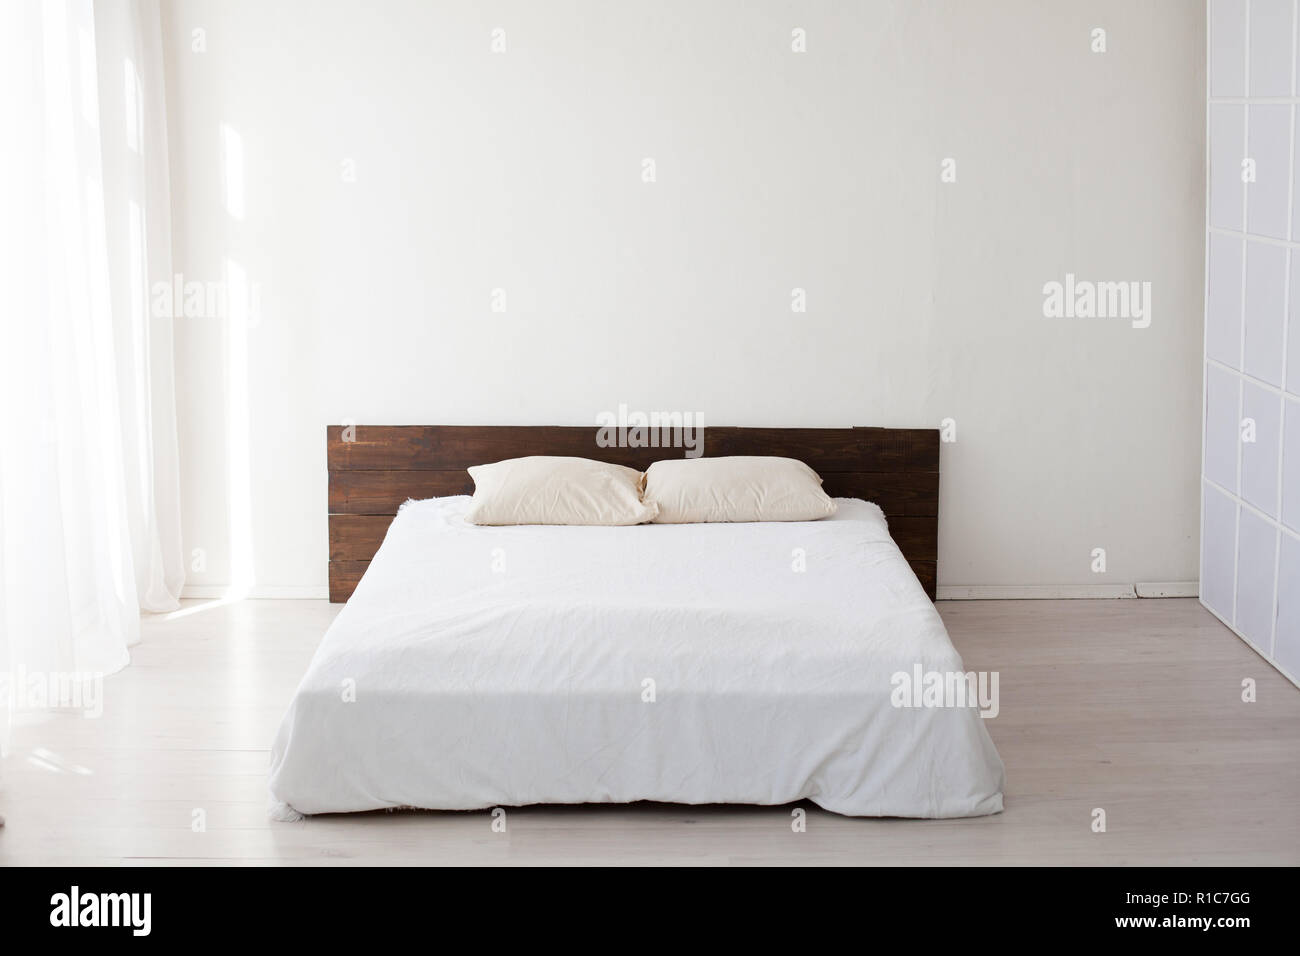 large bed in the Interior white bedrooms Stock Photo ...